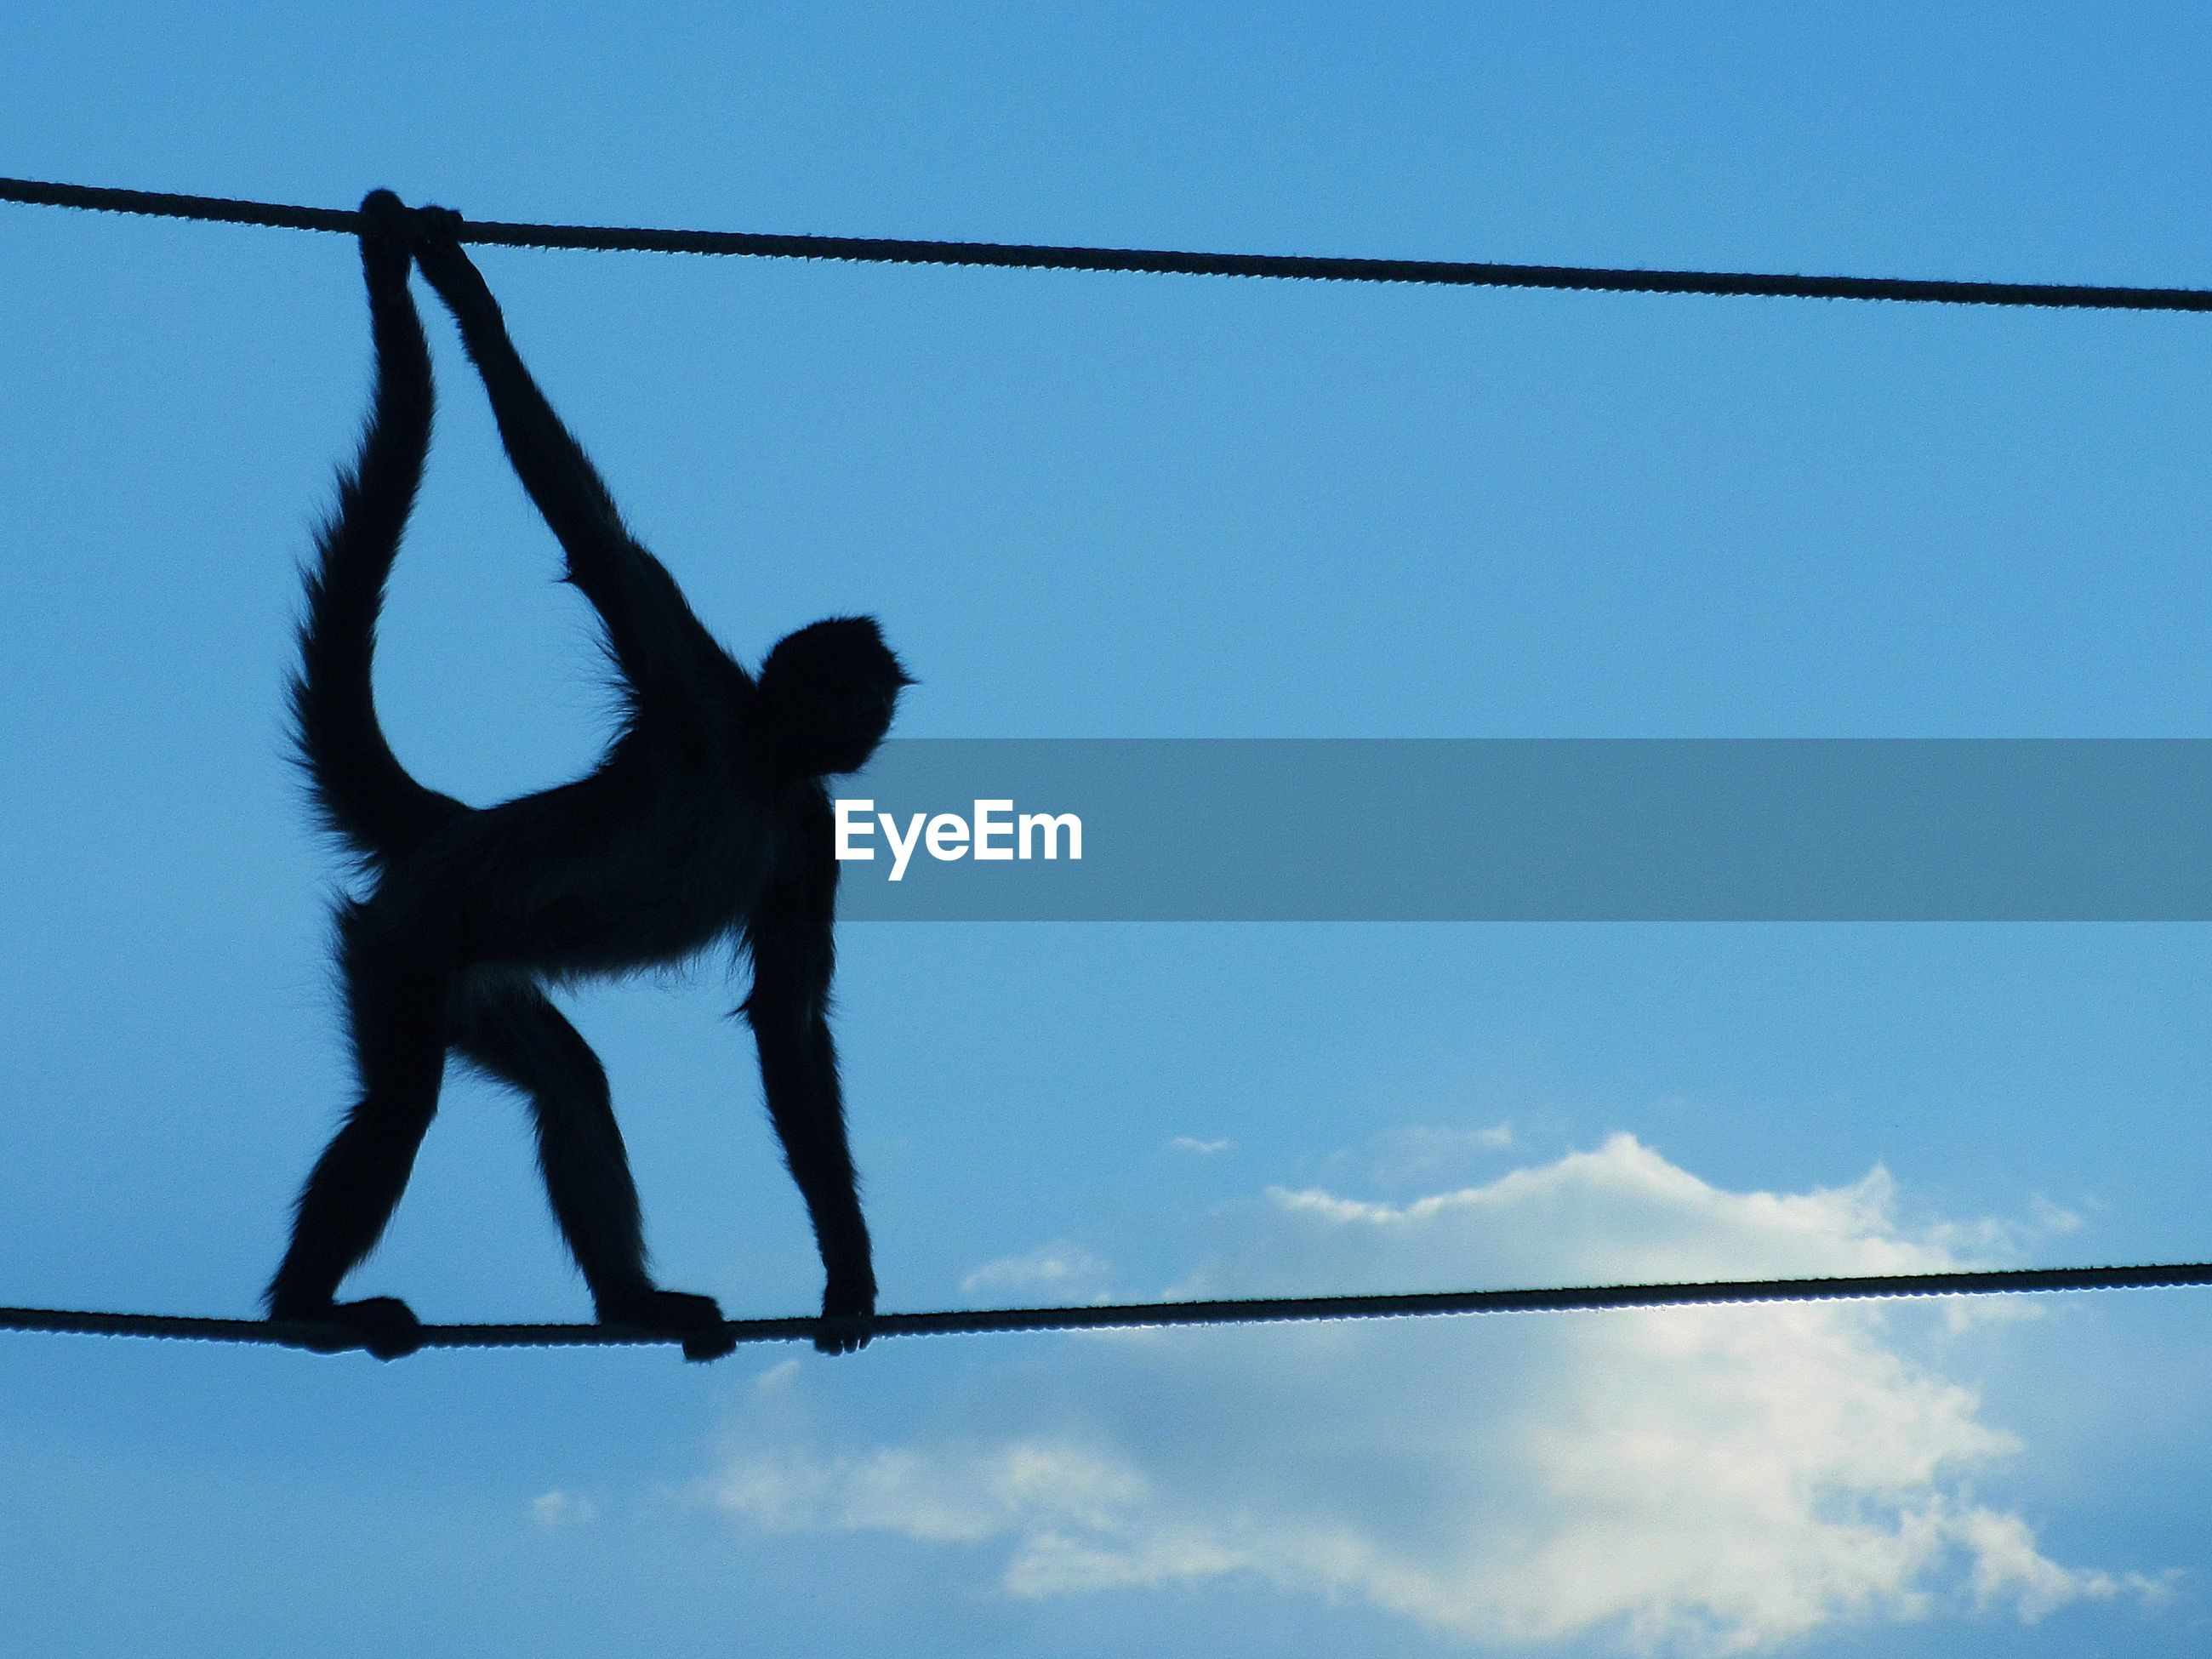 Silhouette monkey standing on rope against sky